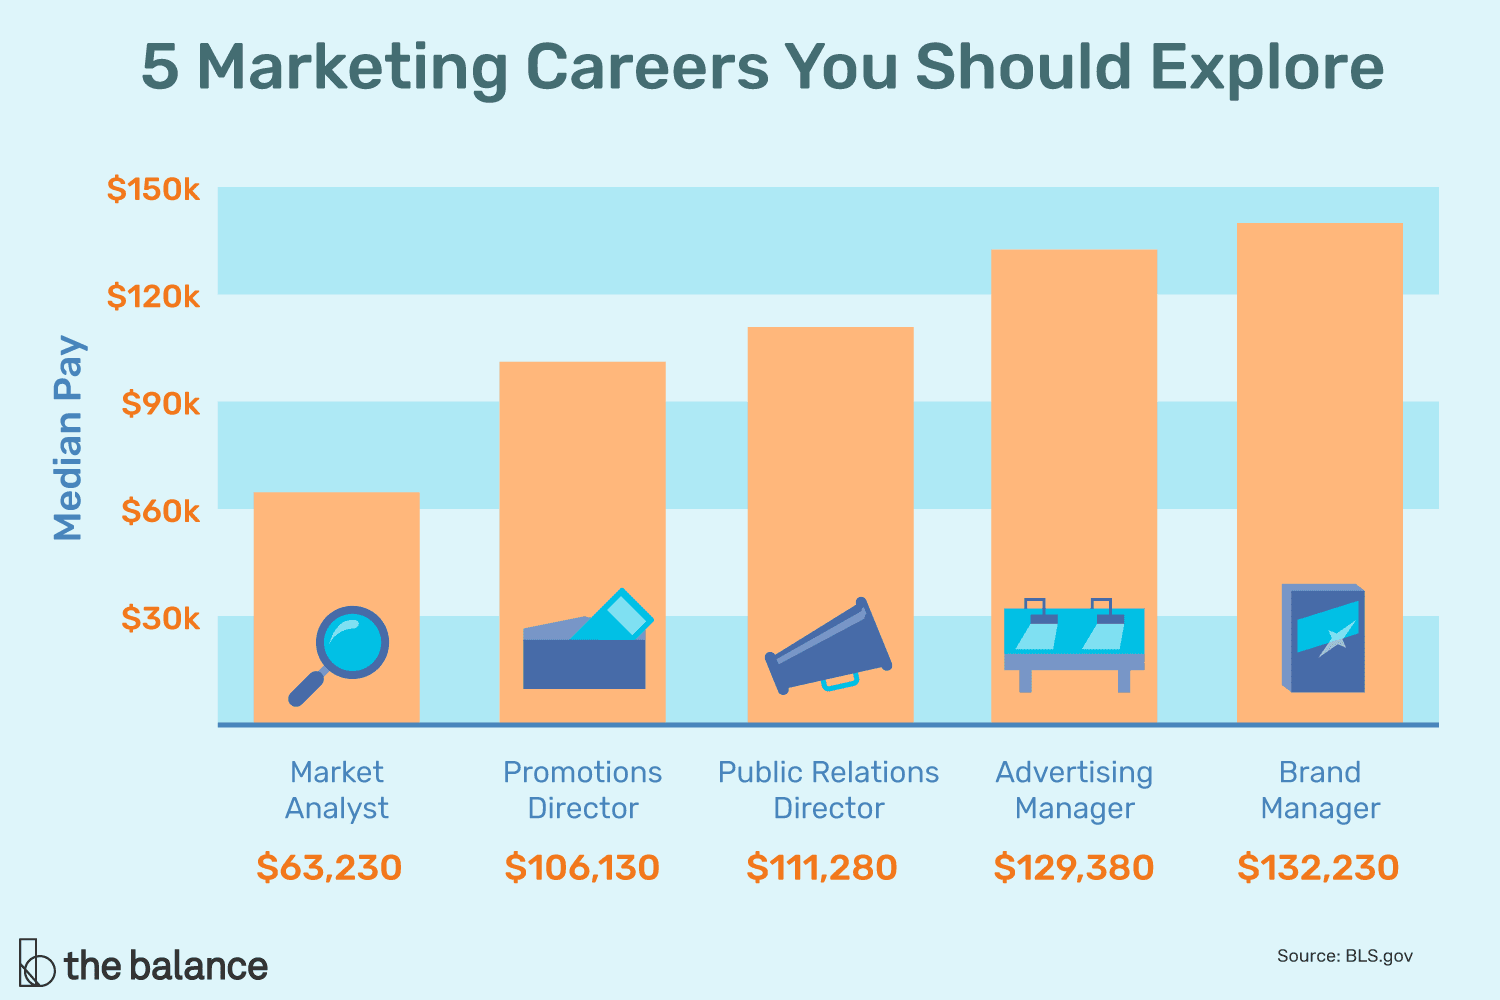 5 Marketing Careers You Should Explore